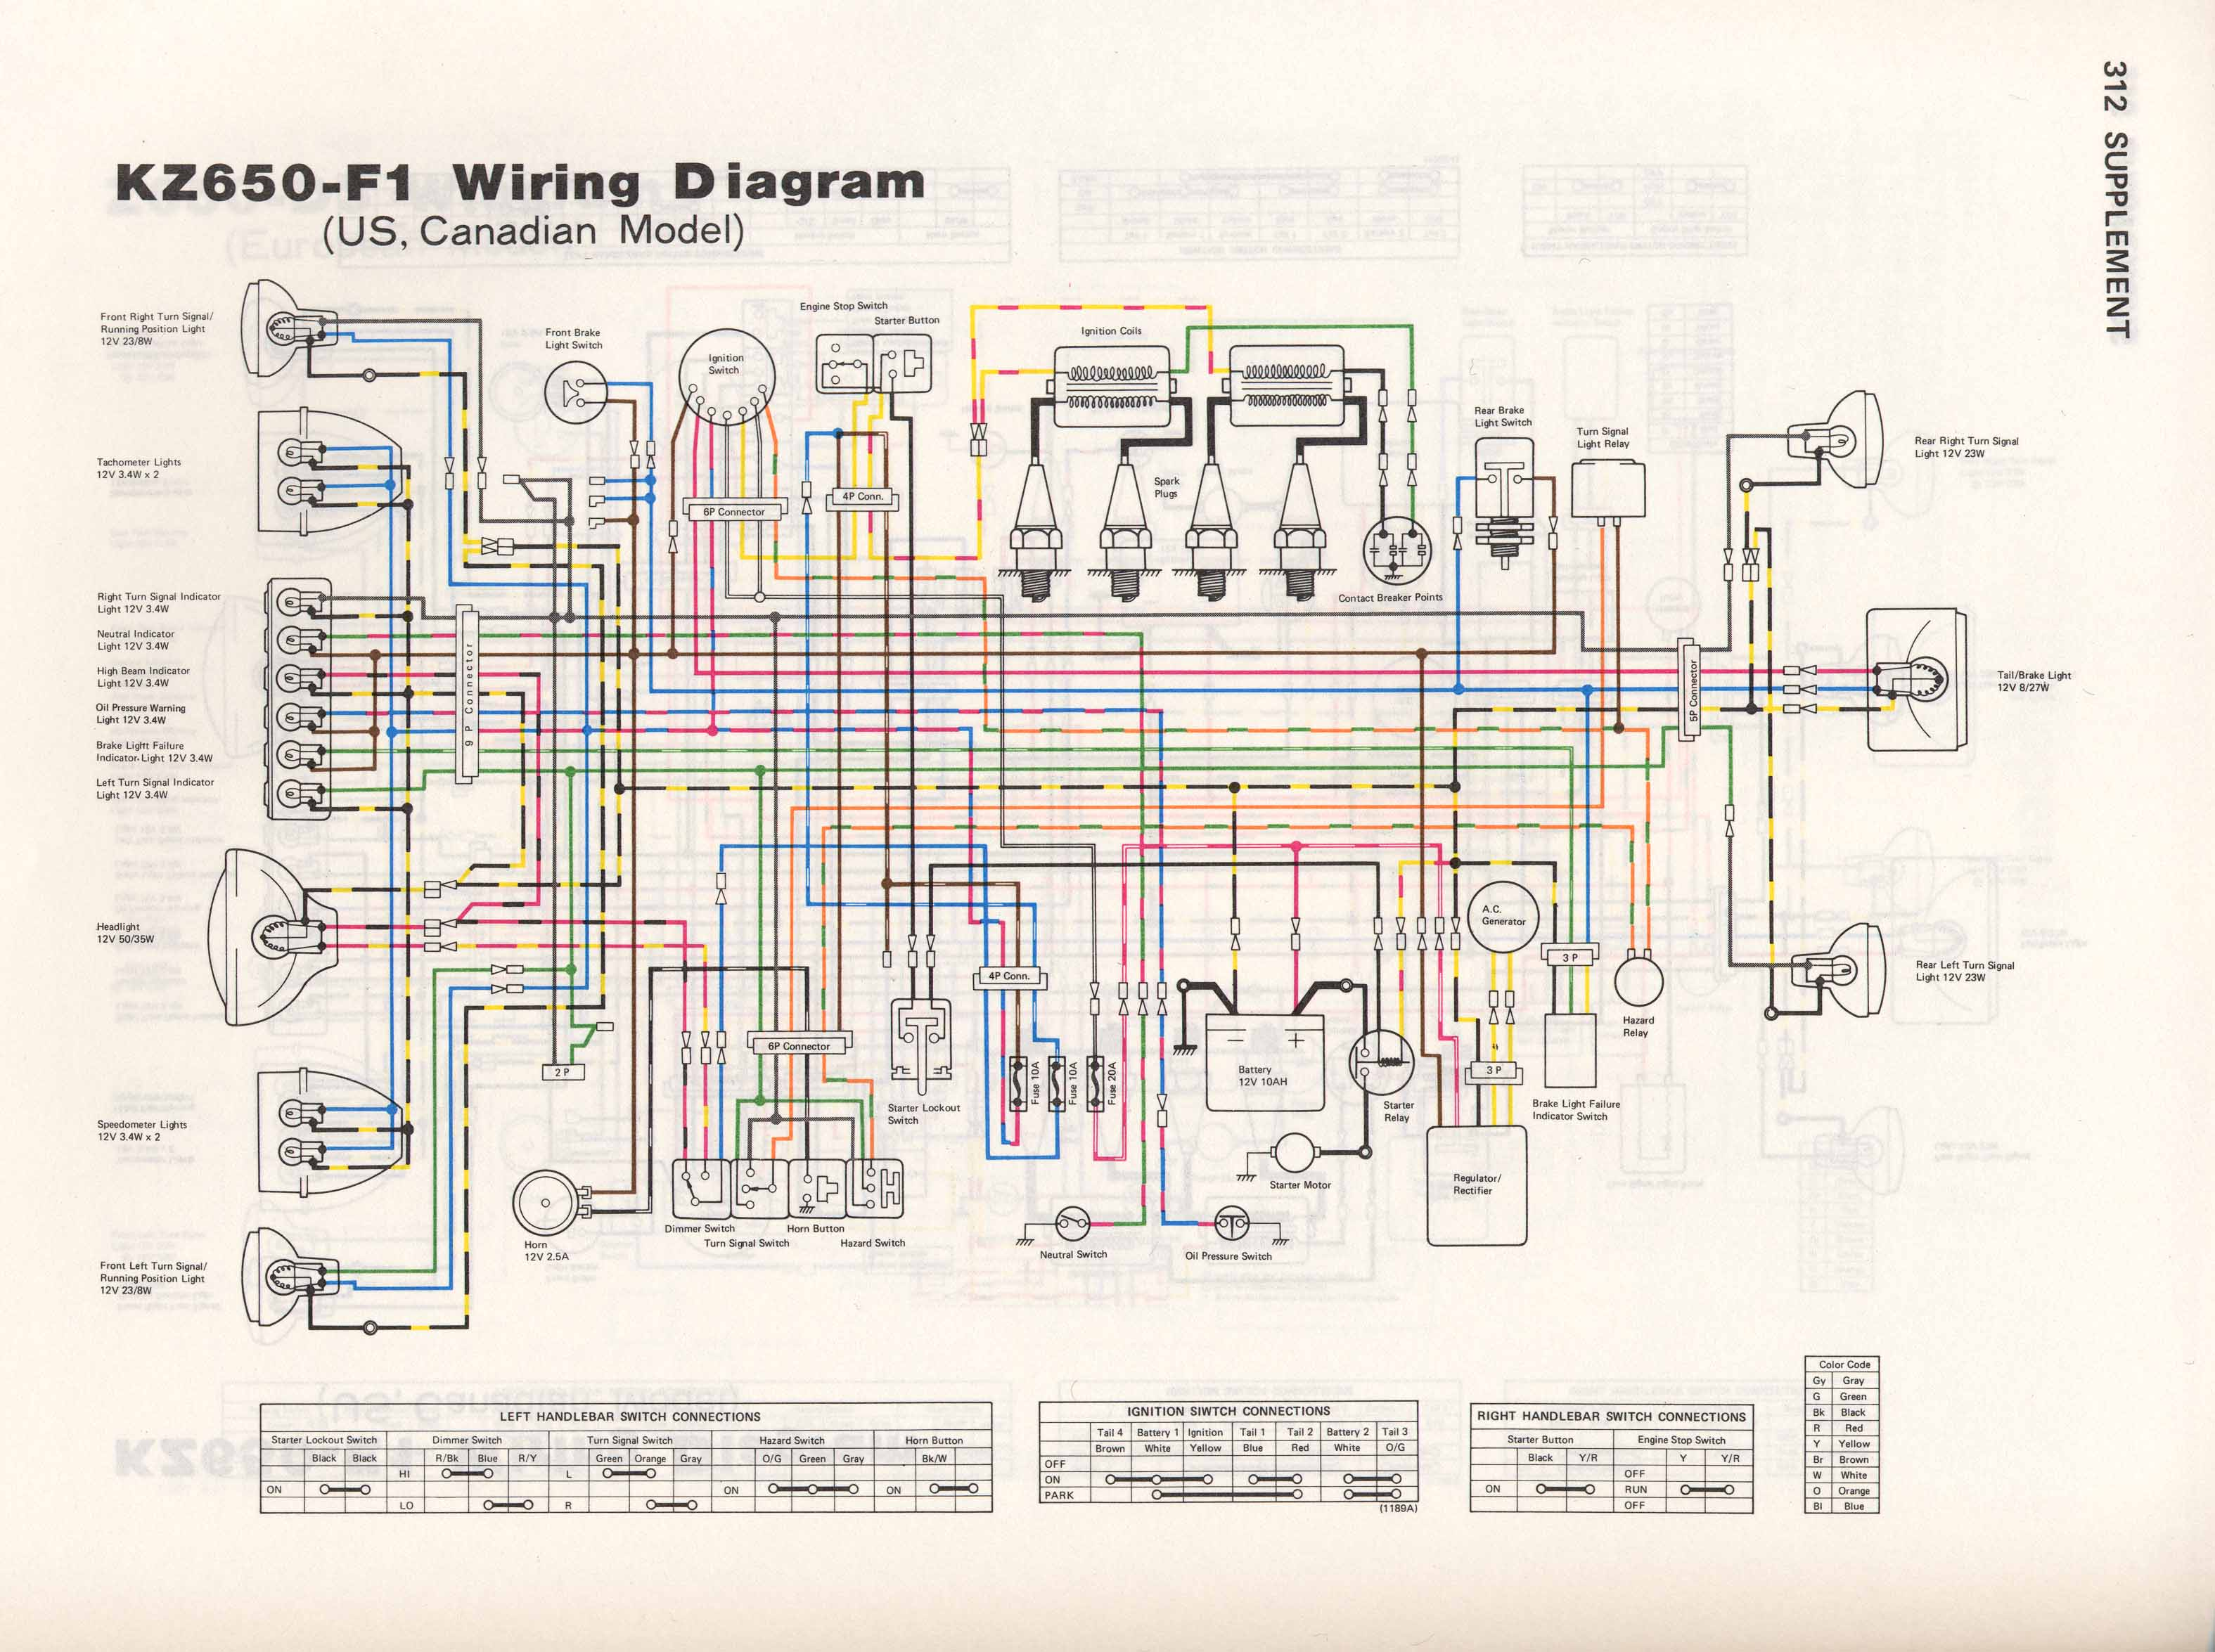 Kawasaki H2 Wiring Diagram Diy Enthusiasts Diagrams Bayou 300 Kz650 Info Rh 750 Klf